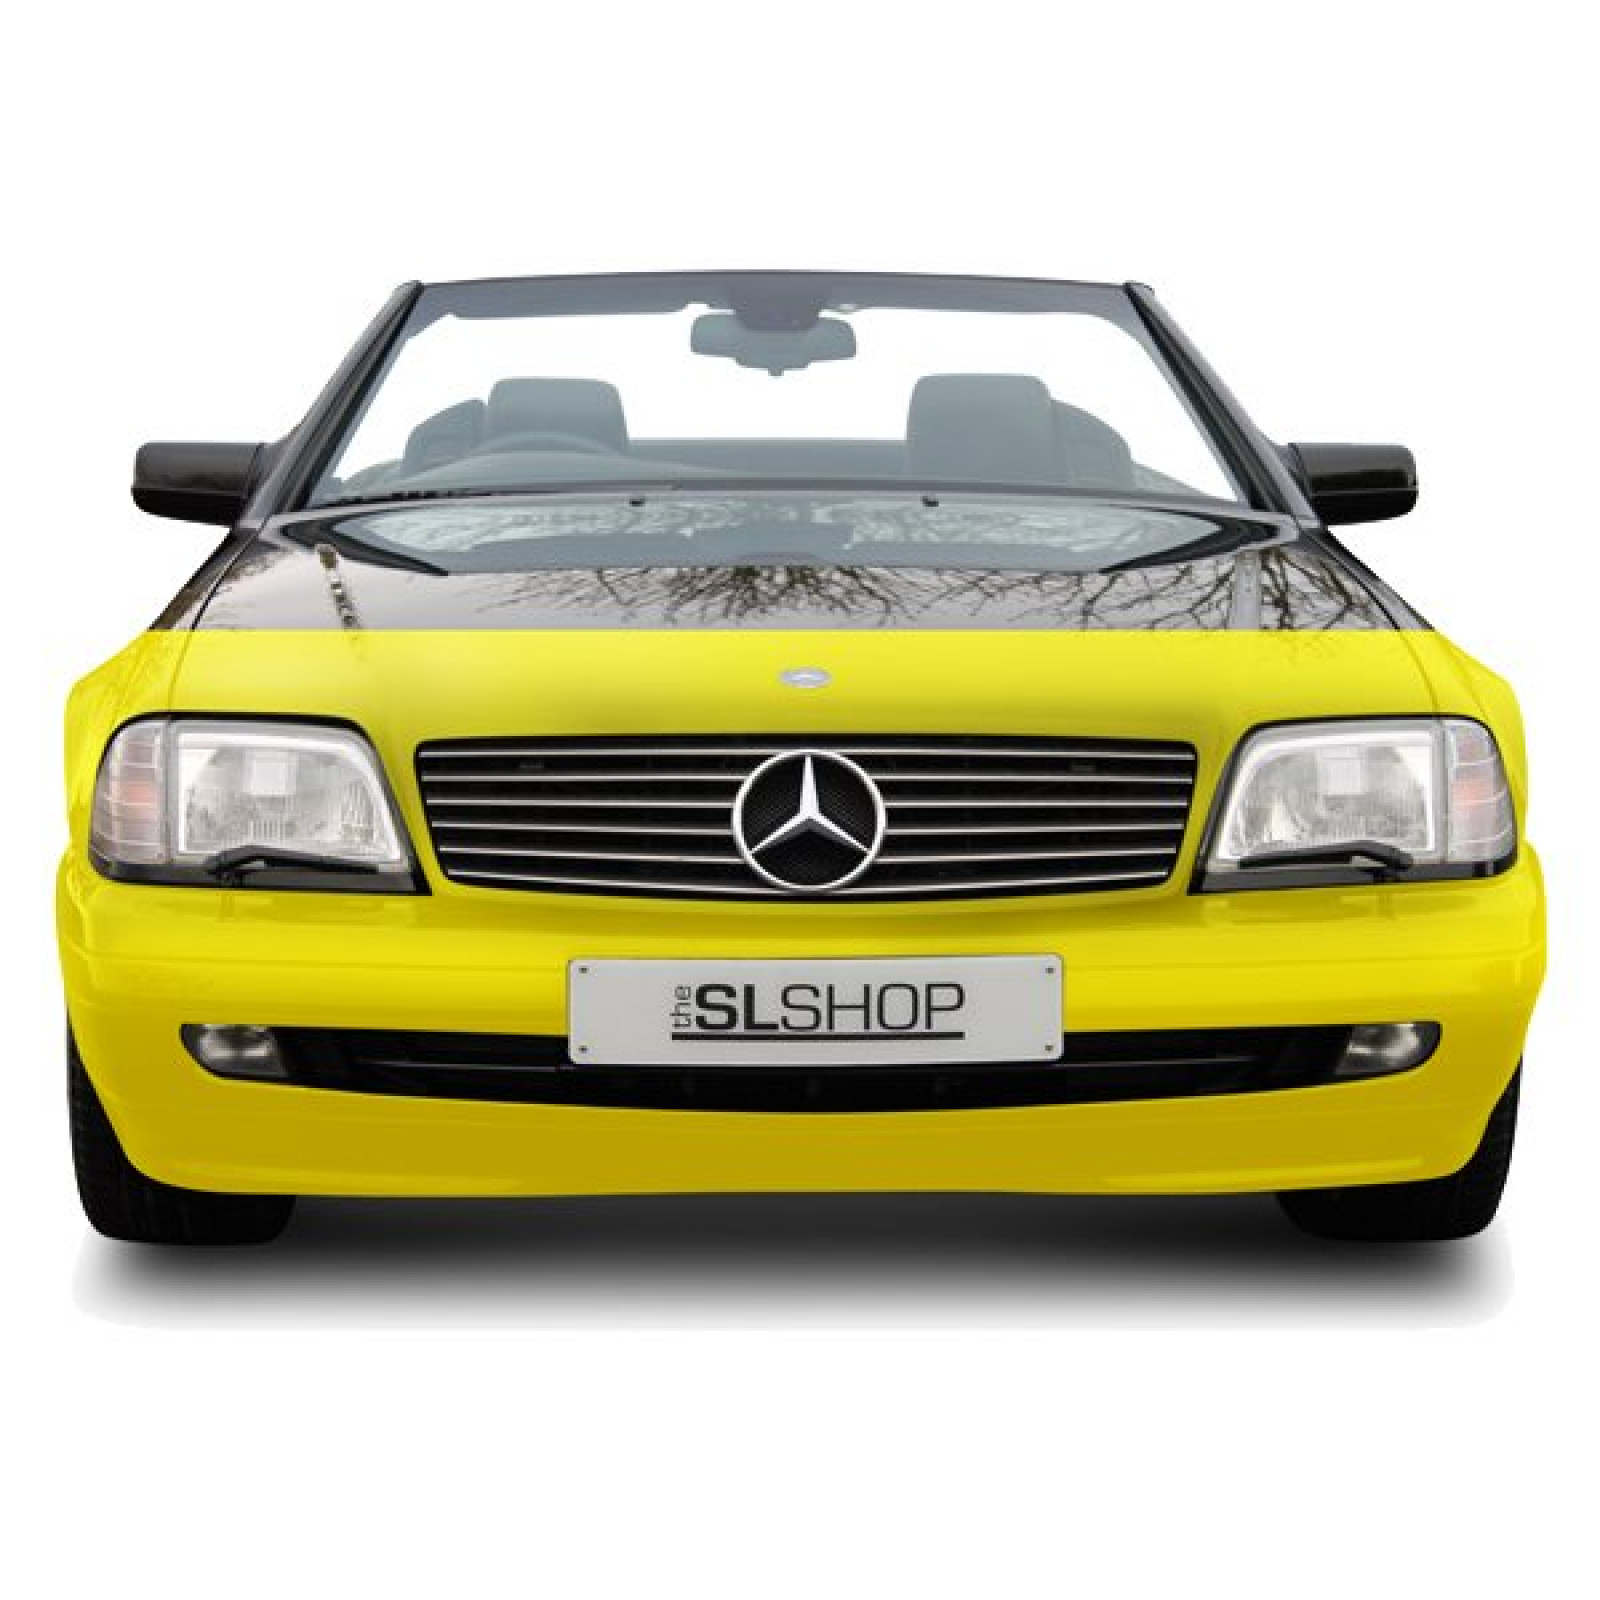 Mercedes benz sl r129 paint protection film pattern for Mercedes benz silver spring service